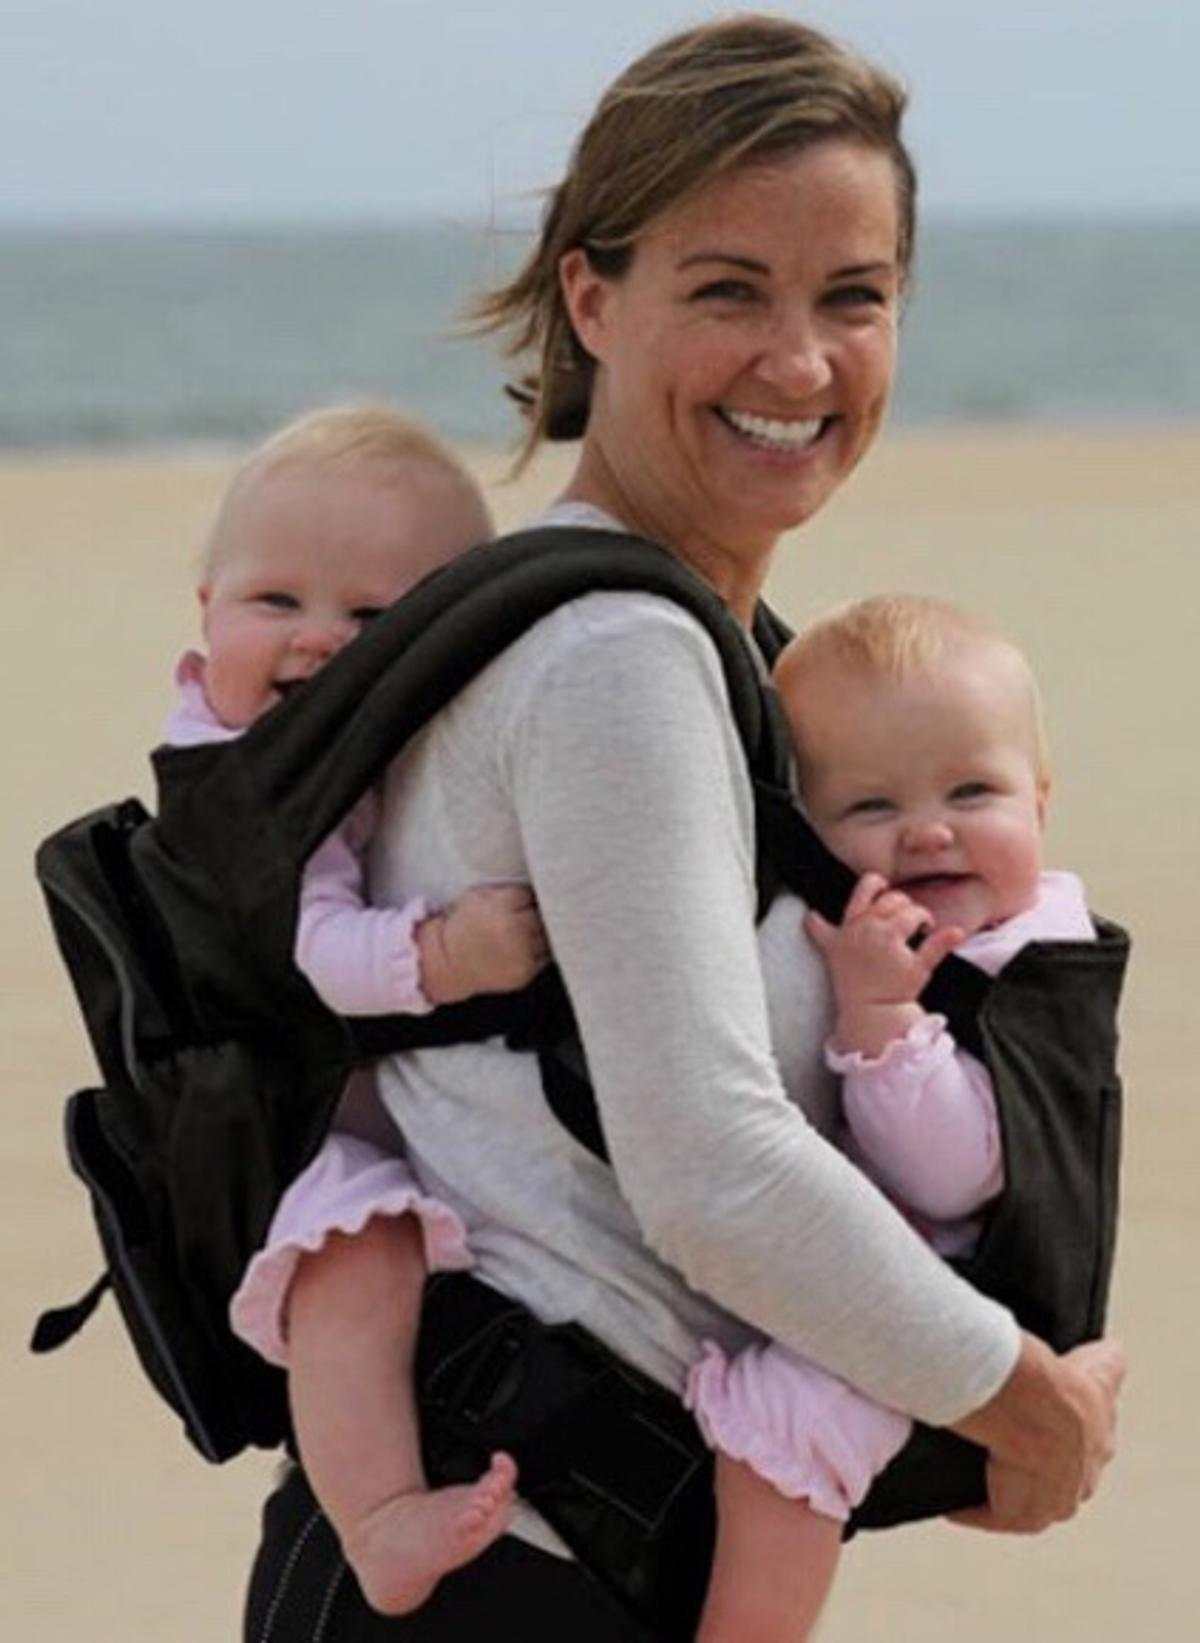 Twingaroo Original Twin Baby Carrier In Ec1v London For 50 00 For